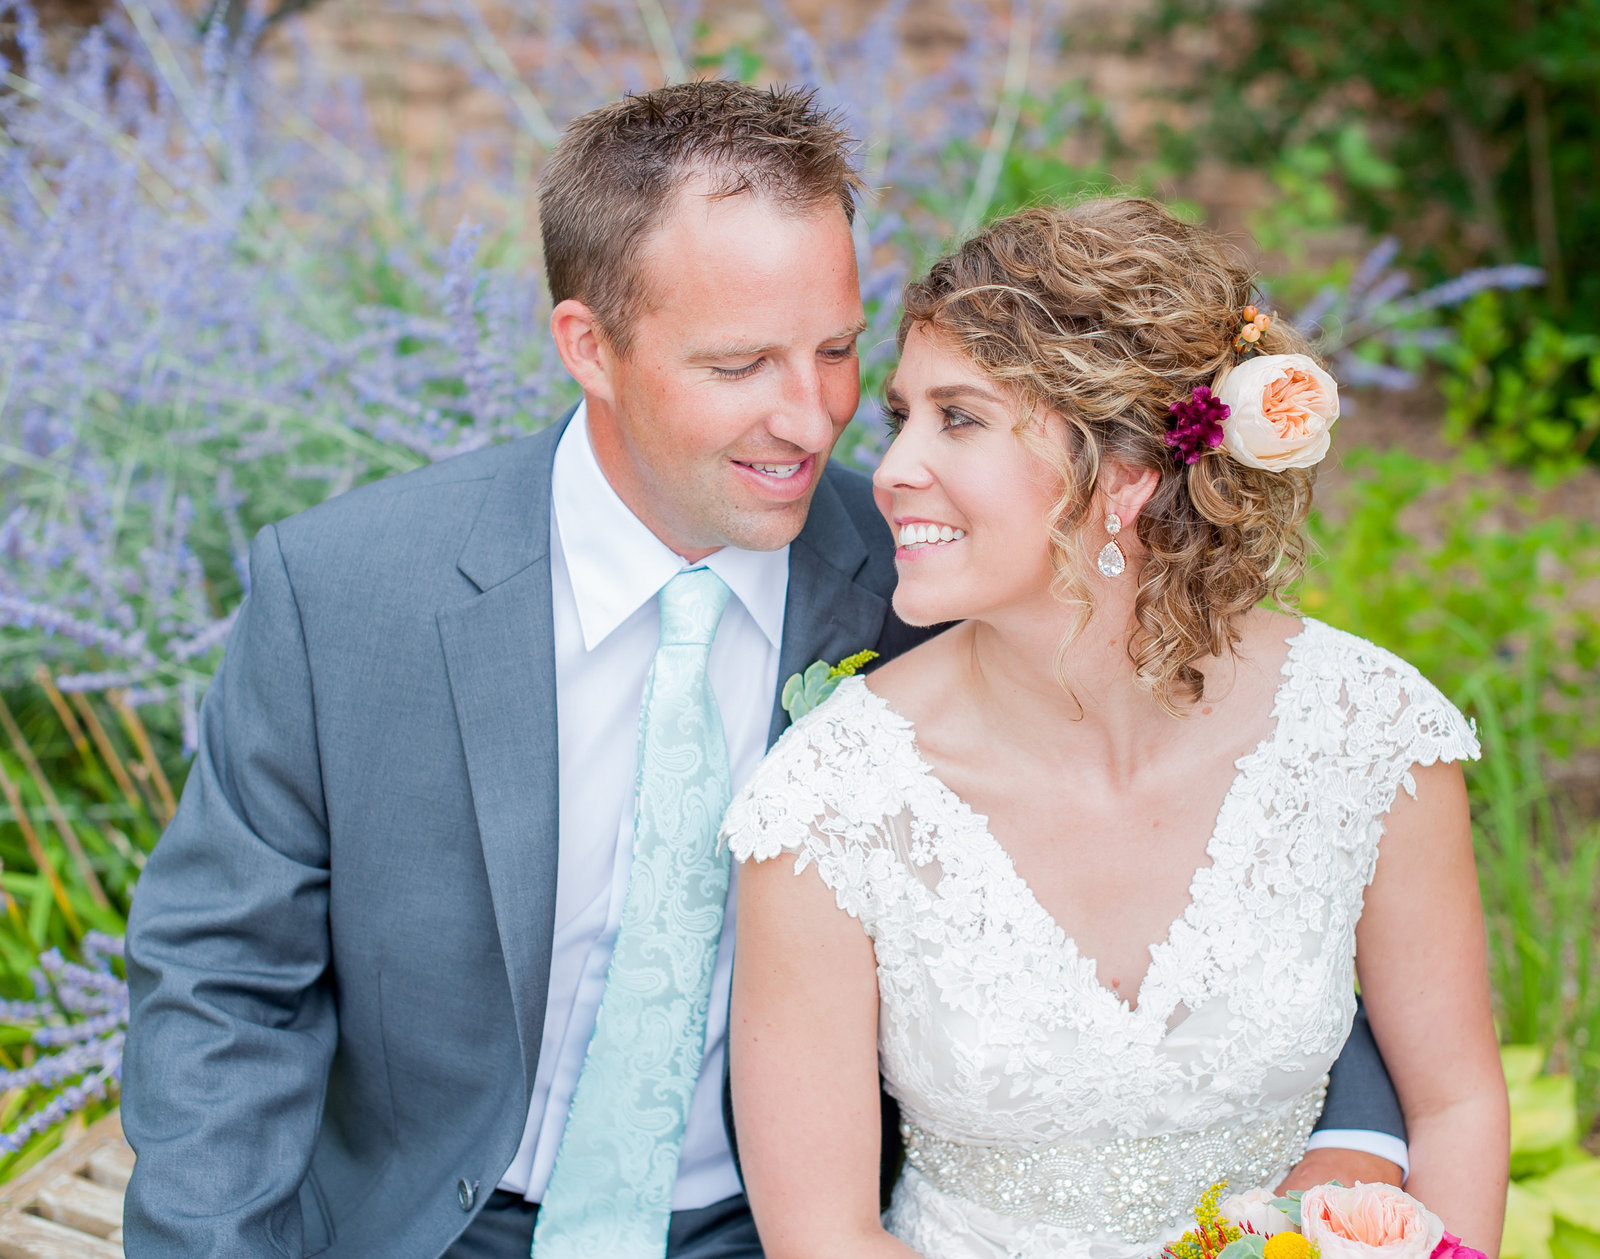 Gorgeous modern wedding photos by Kris kandel at the Minnesota thumper pond ottertail venue.